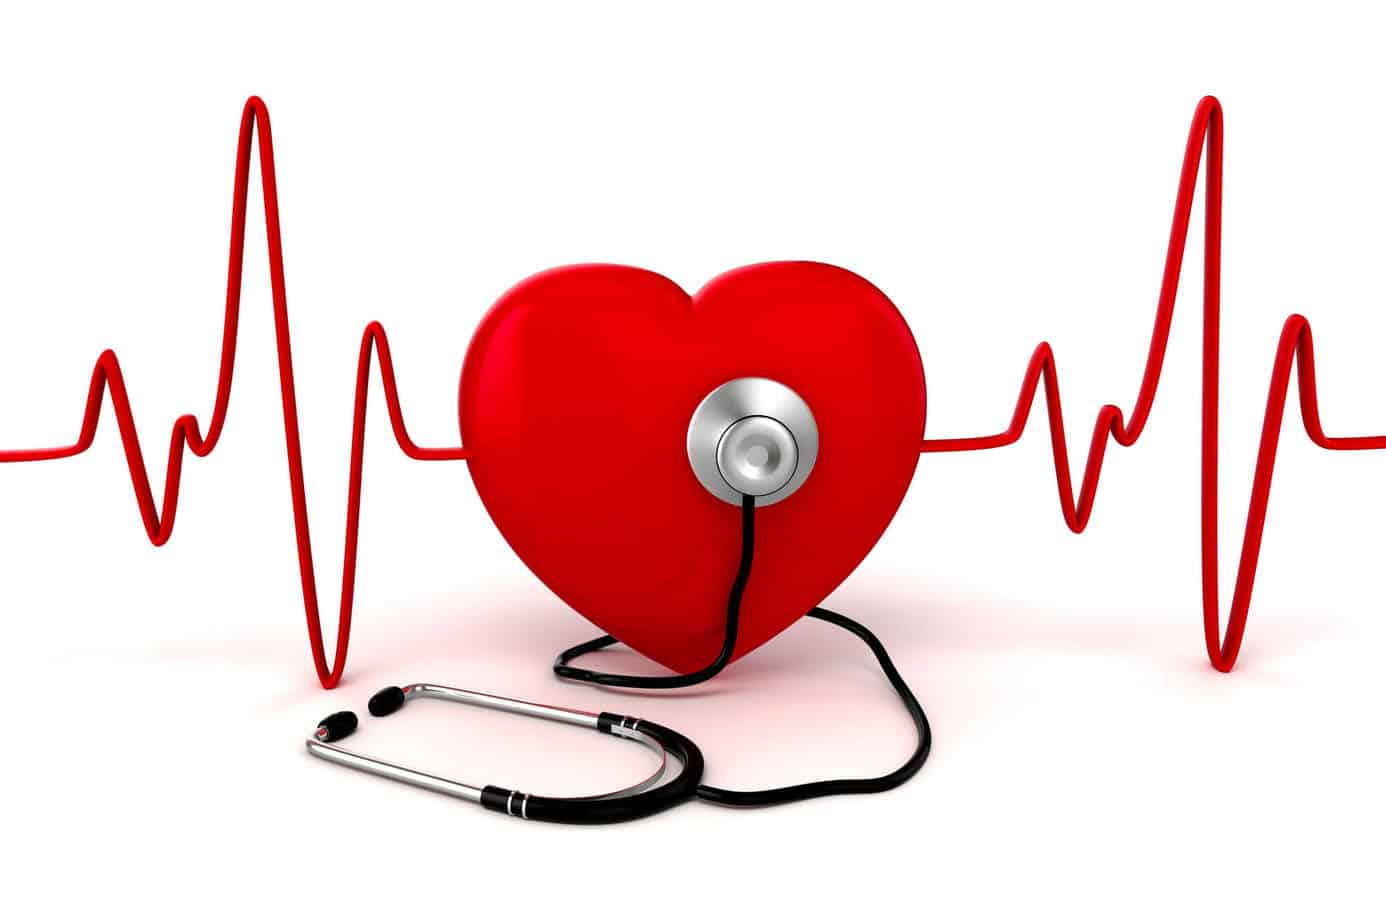 Fasting has been proven to produce heart health benefits.